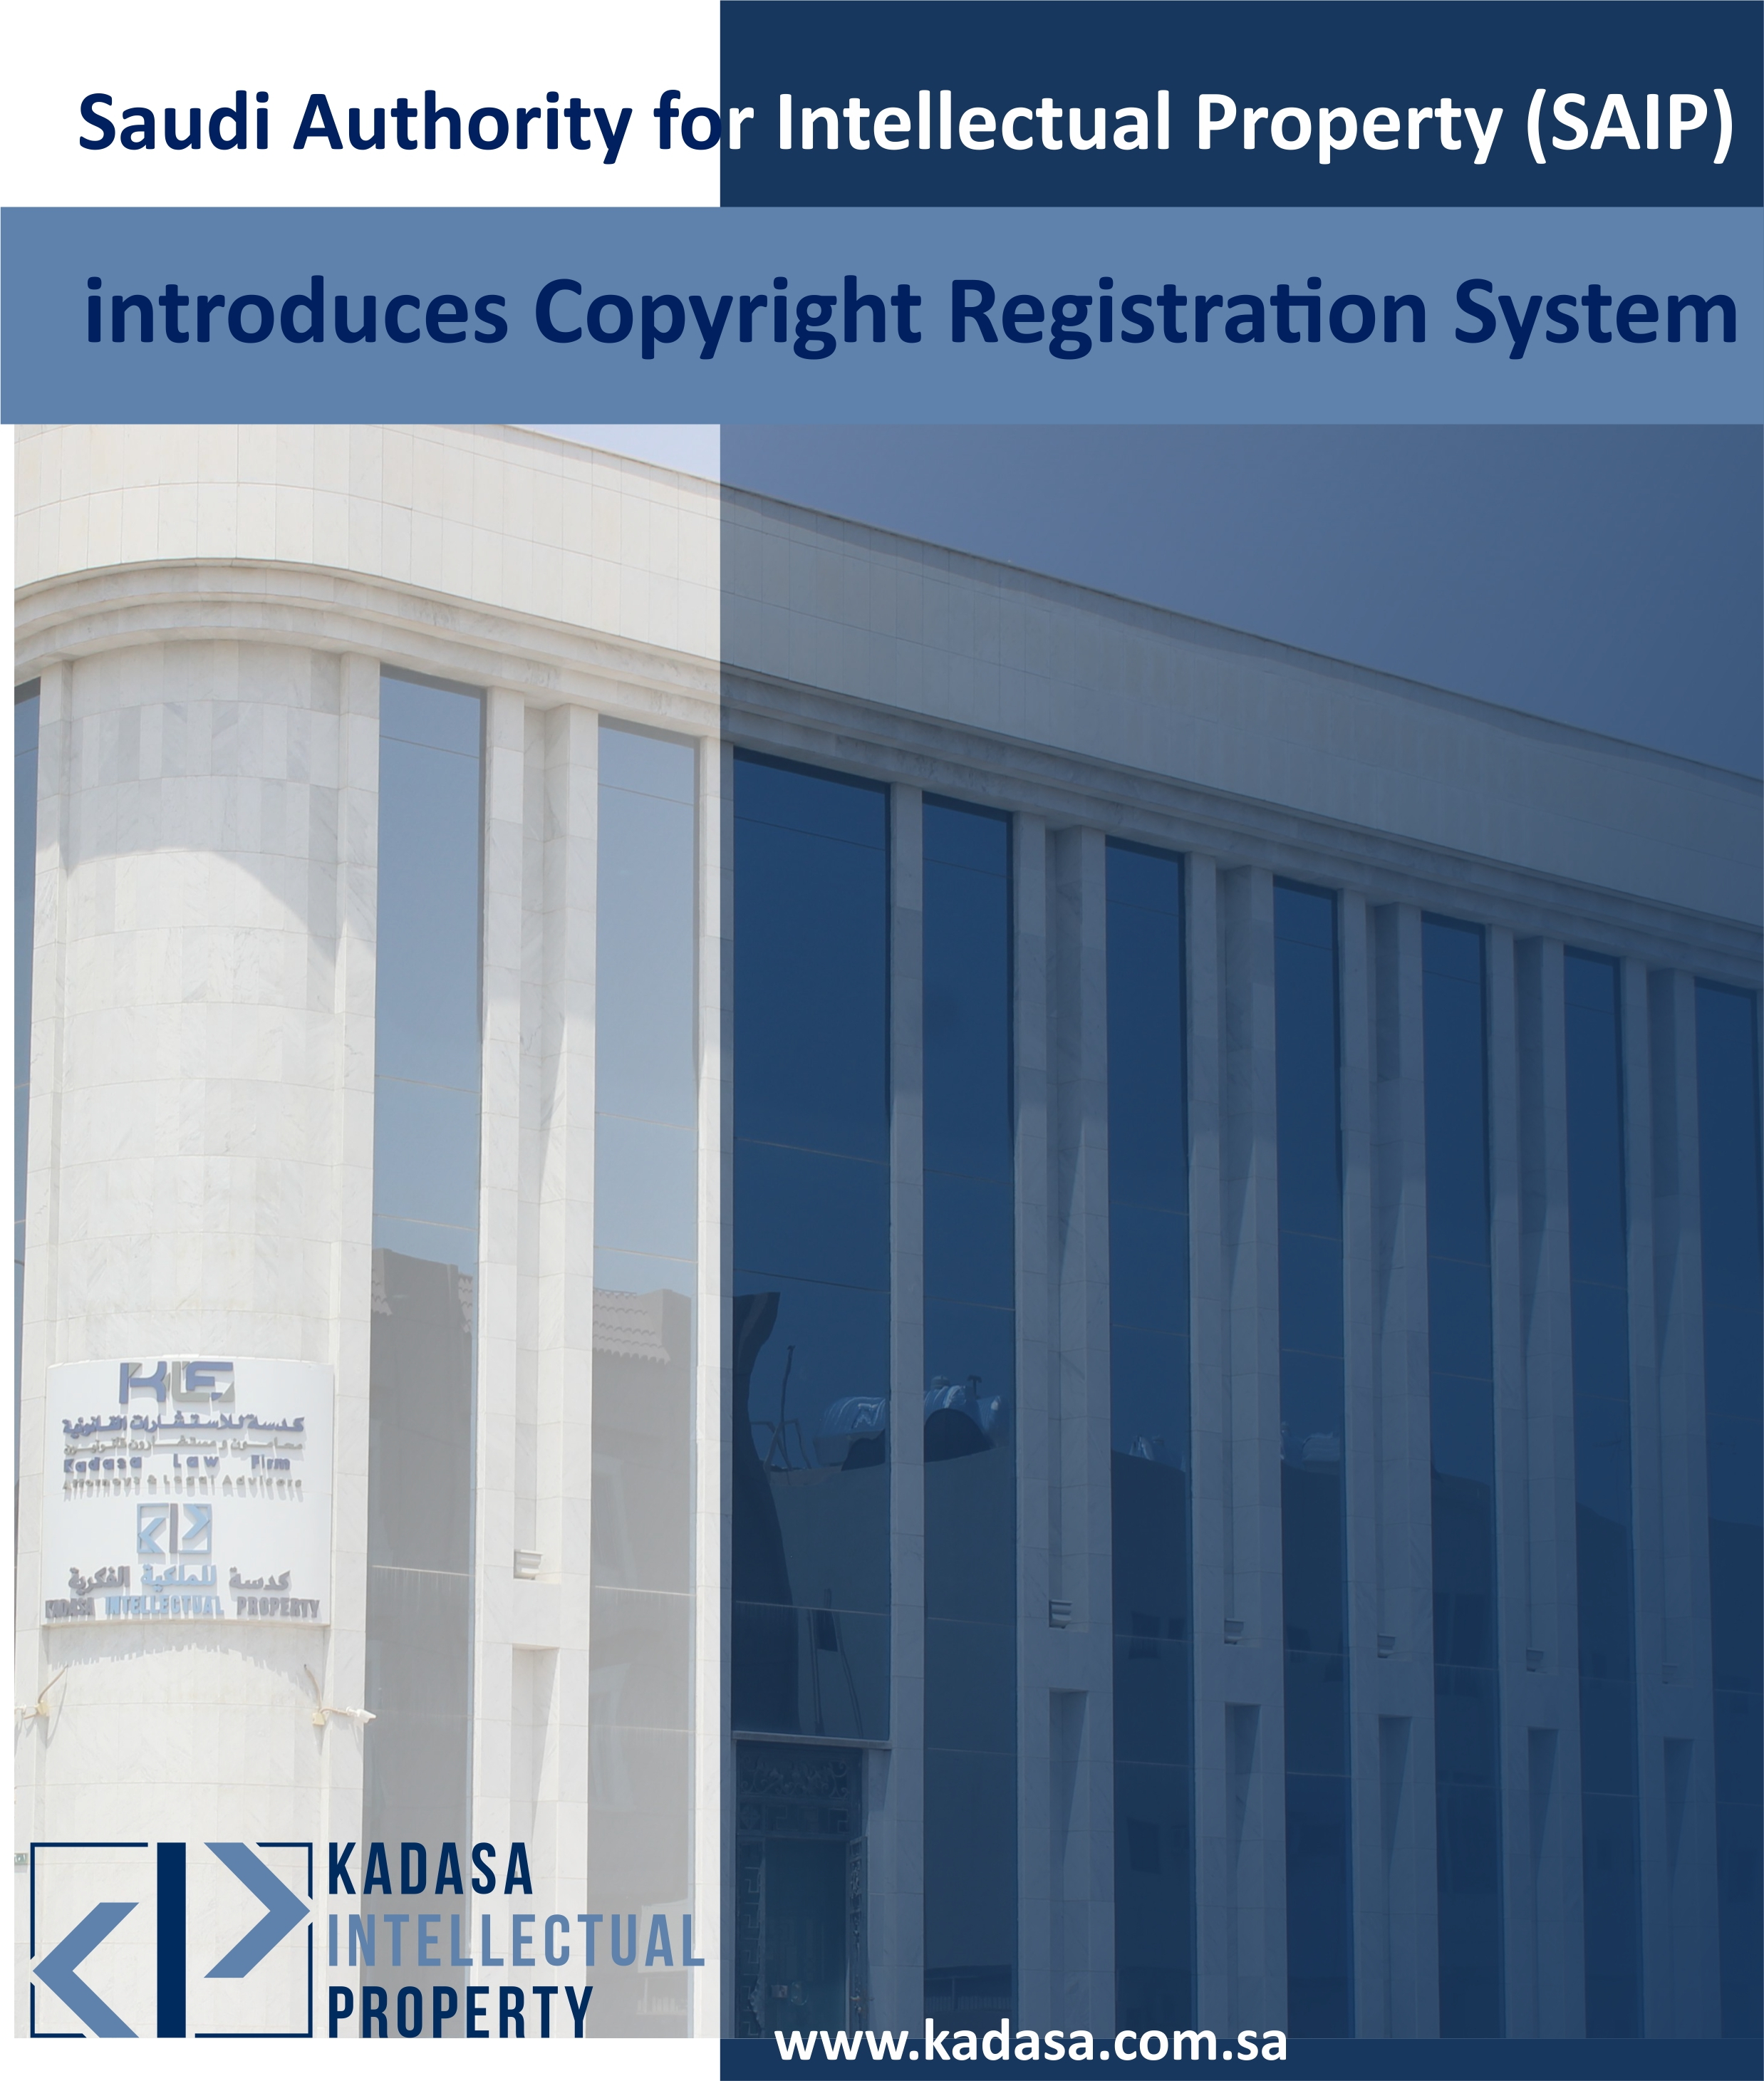 Saudi Authority for Intellectual Property (SAIP) introduces Copyright Registration System